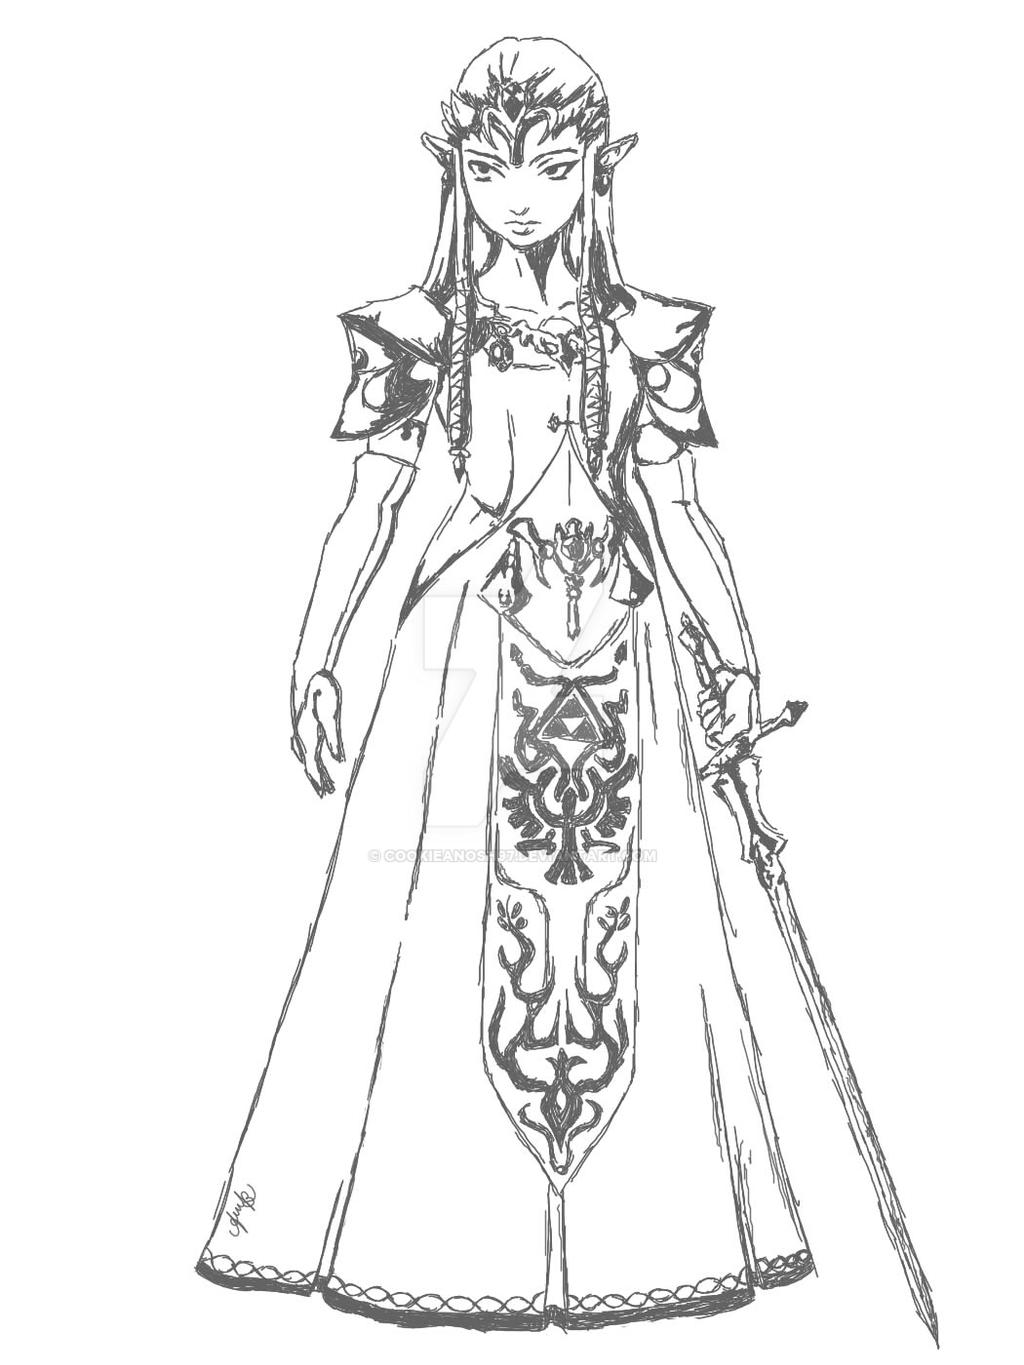 Line Art Zelda : Zelda line art or base by cookieanosh on deviantart